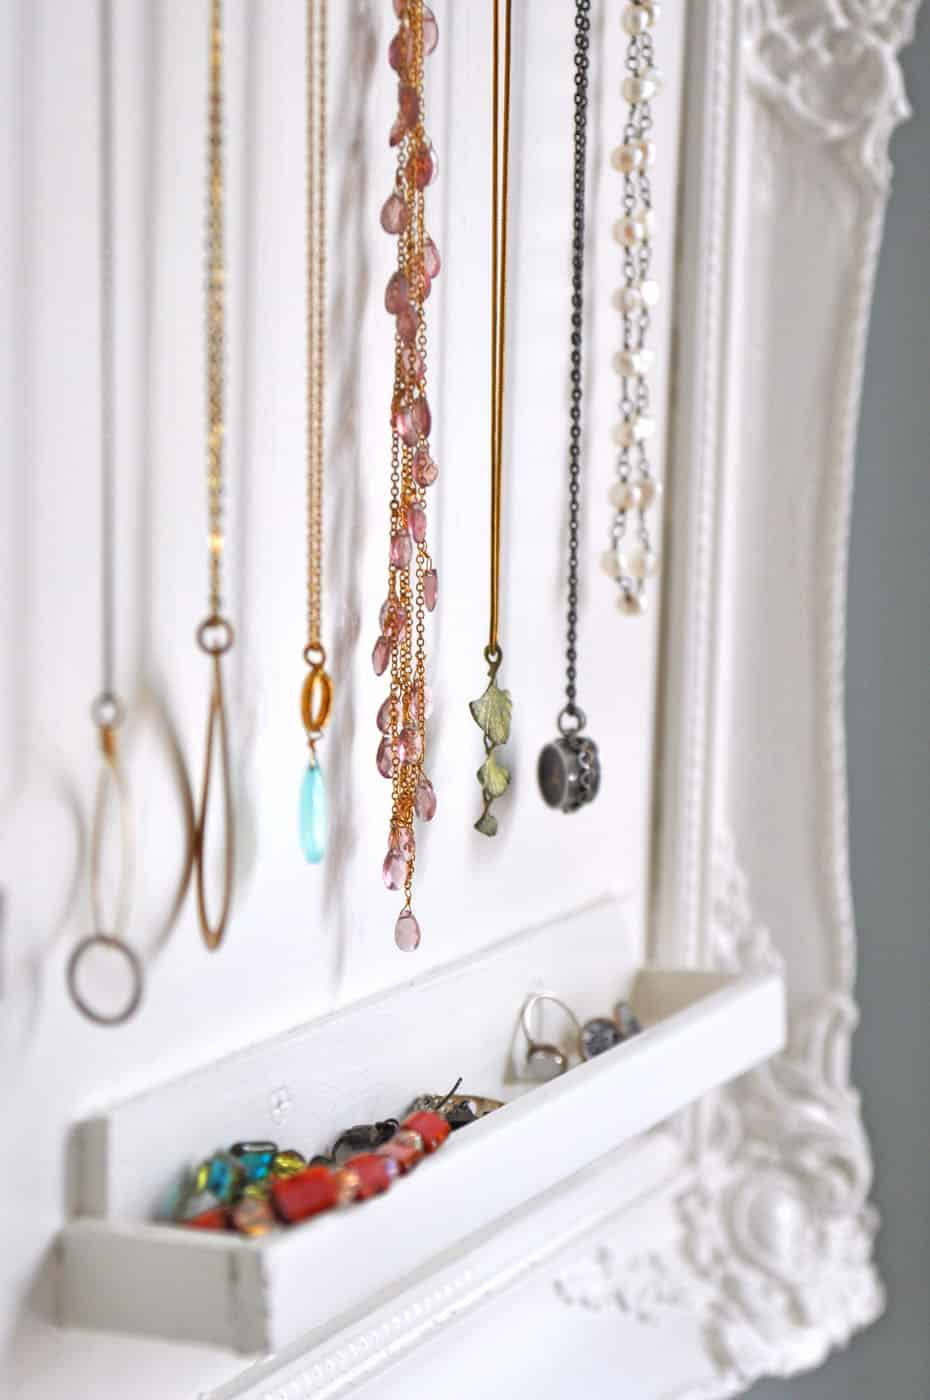 Turn it into jewellery storage